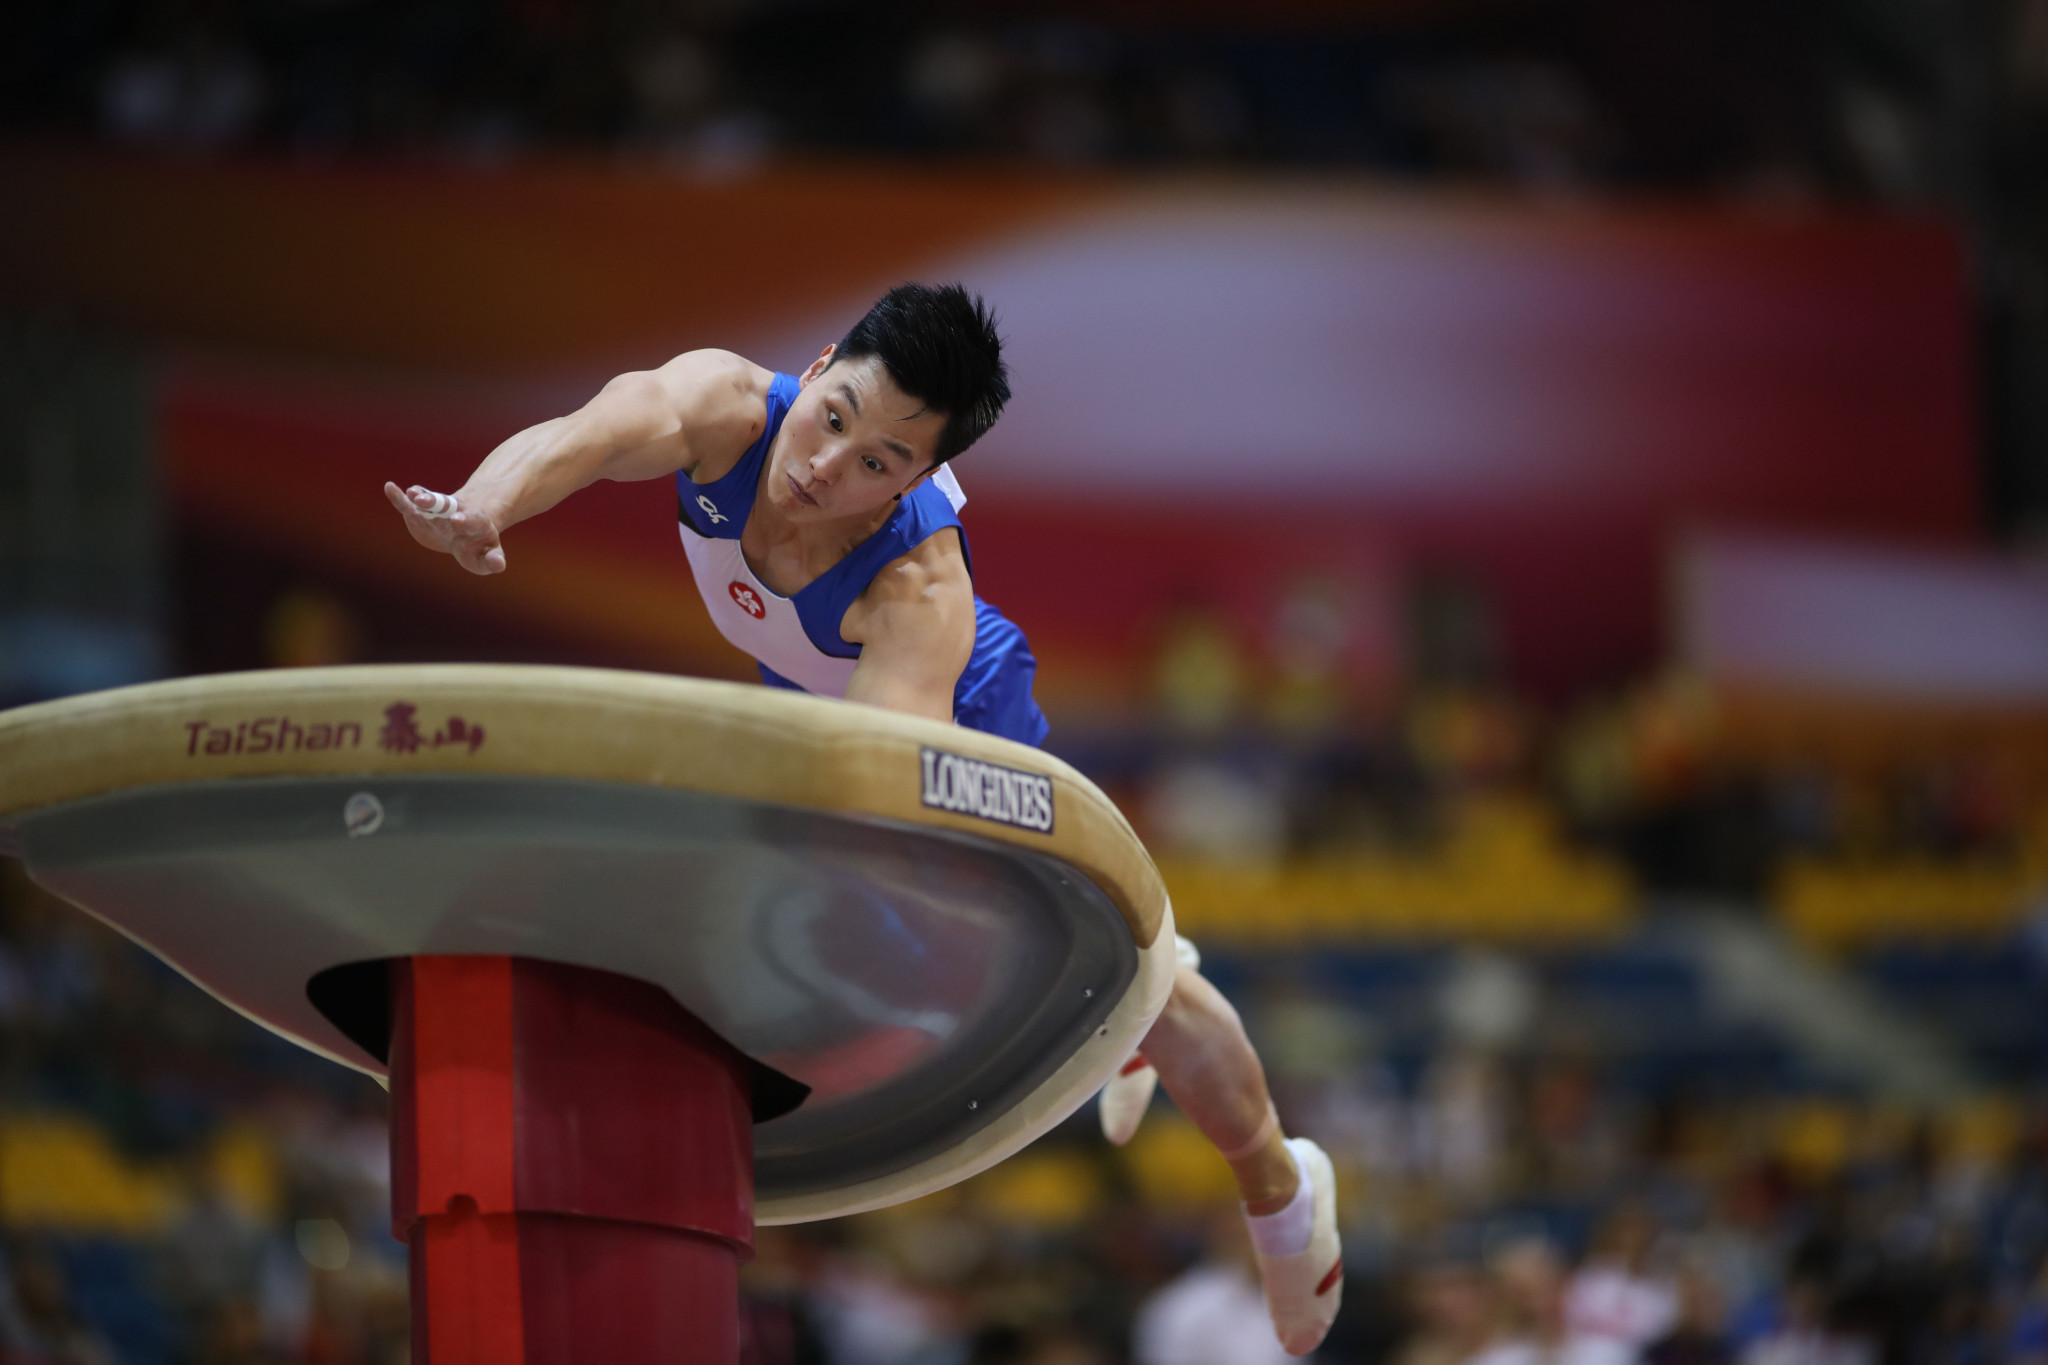 Hong Kong's Shek Wai Hung topped the men's vault qualification standings on day two of the FIG World Challenge Cup in Koper in Slovenia ©Getty Images